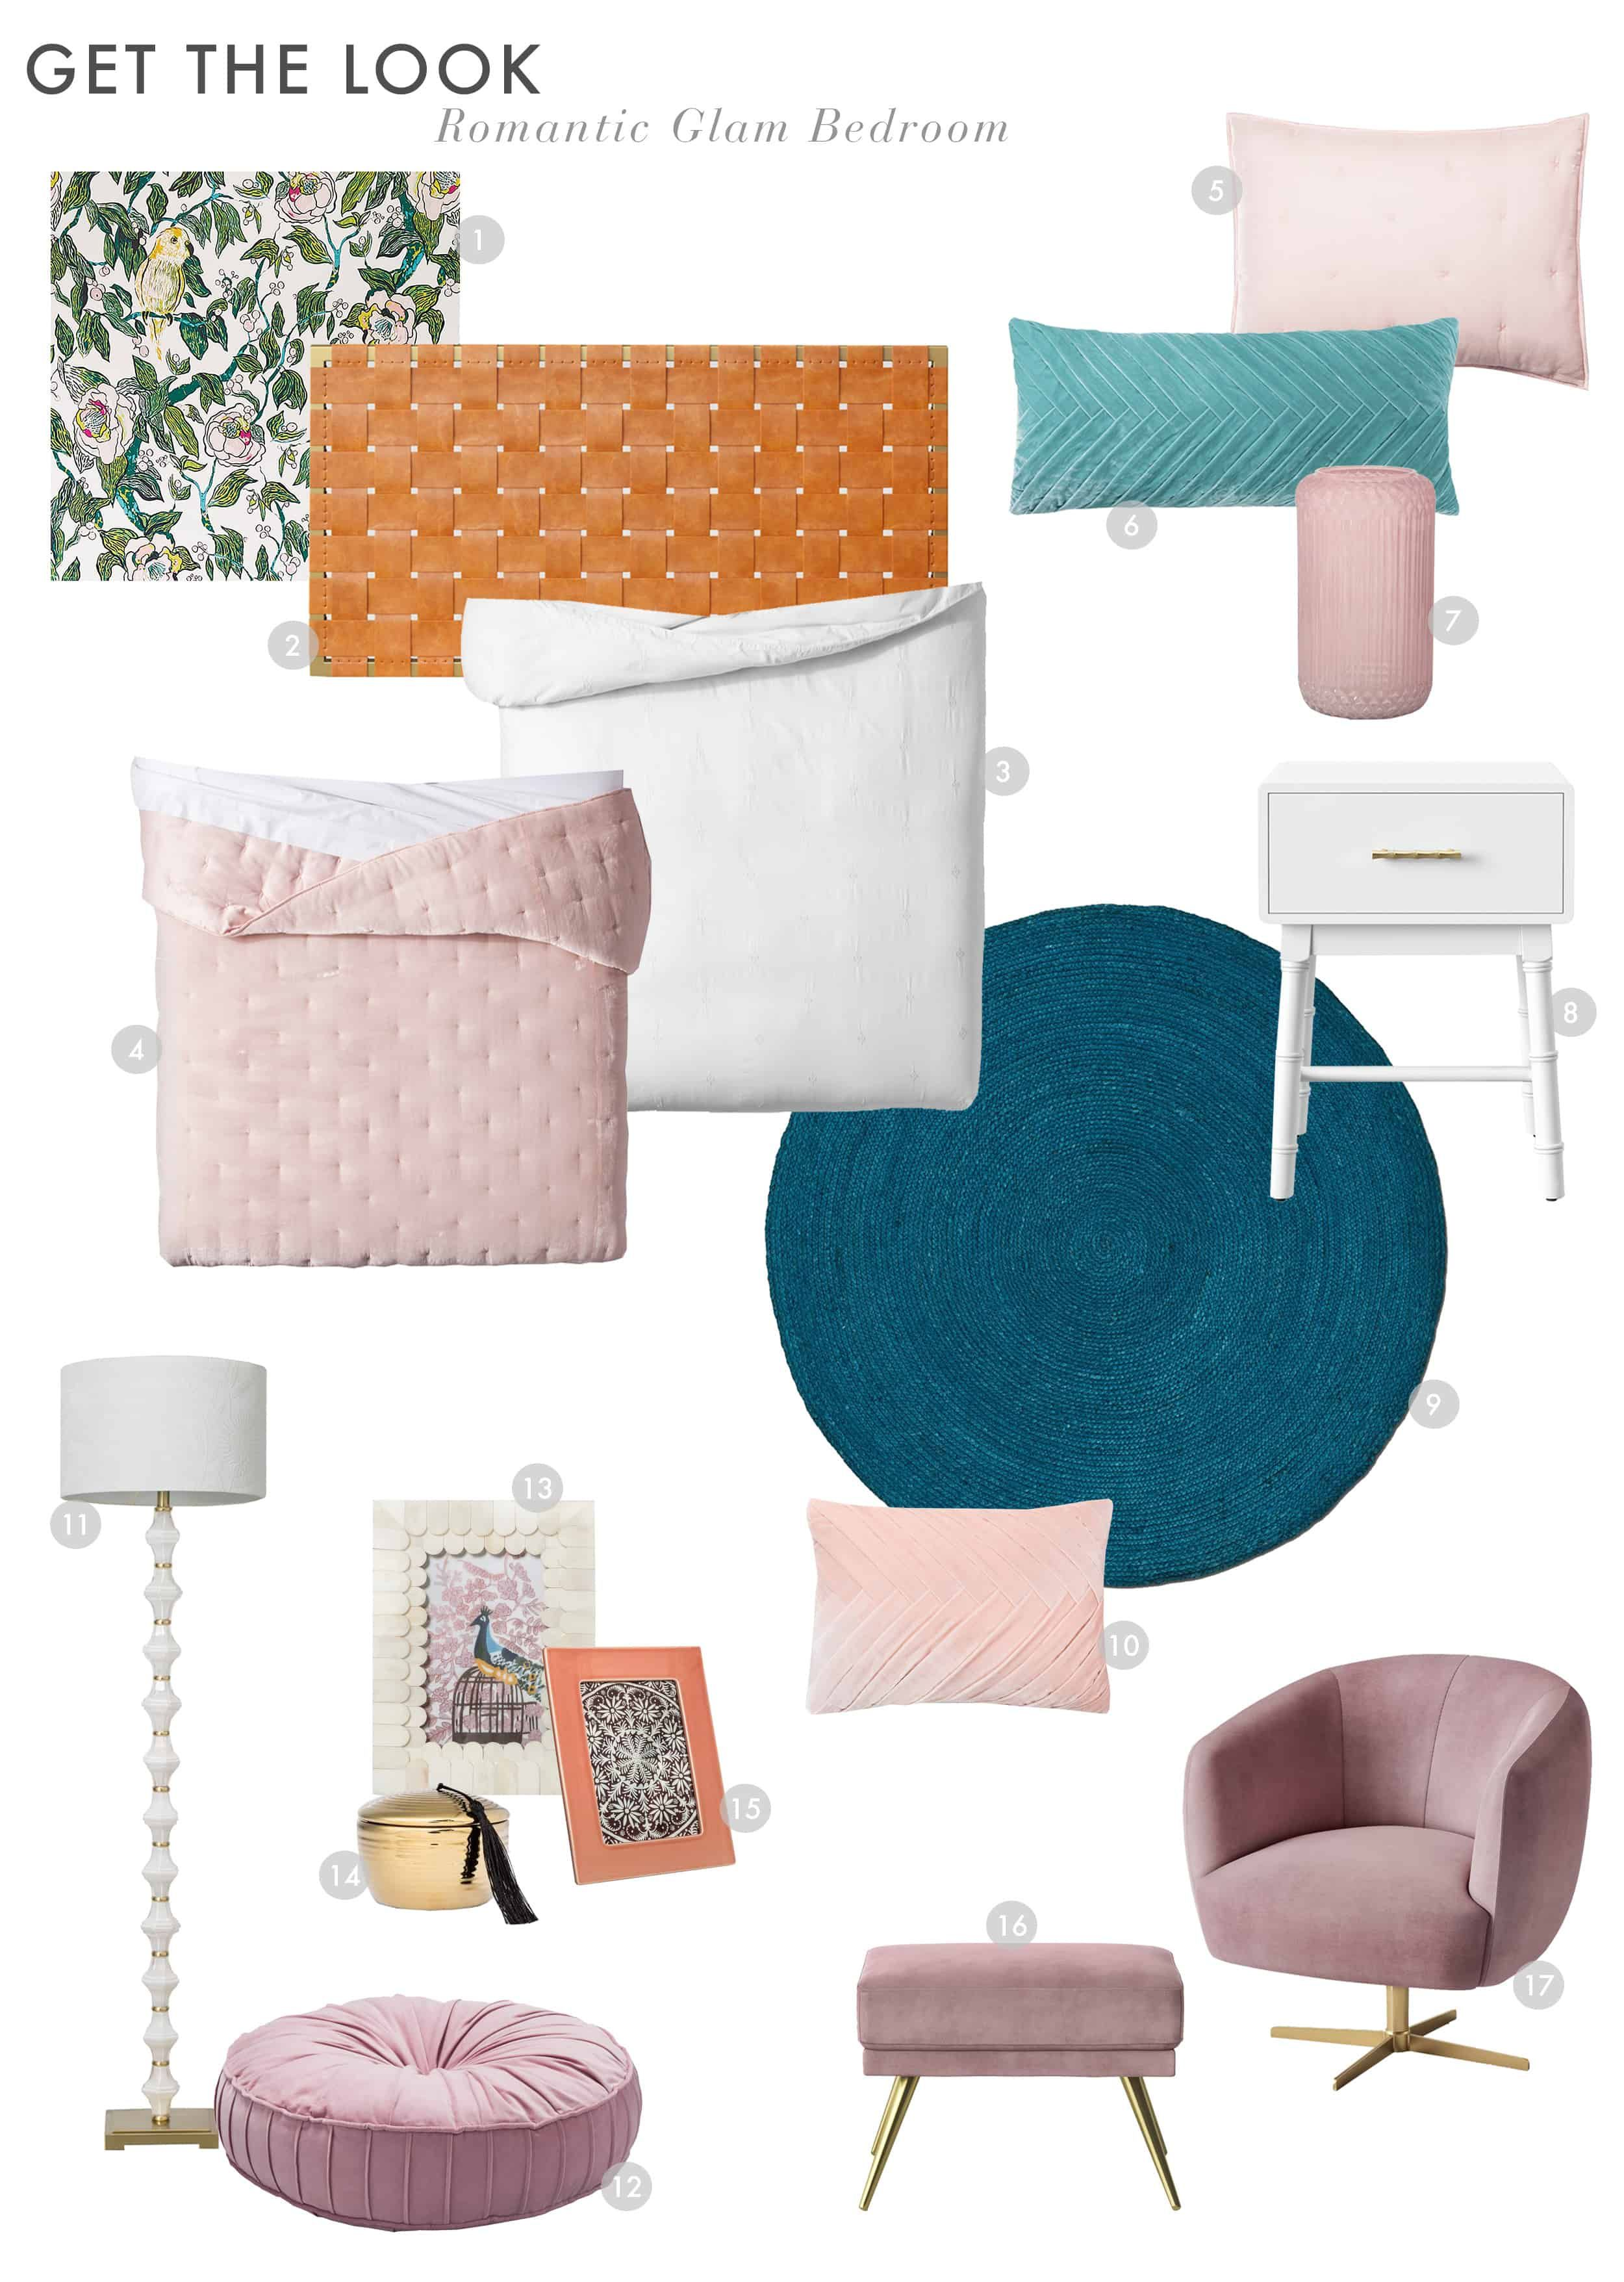 A Romantic Glam Bedroom Makeover With Opalhouse By Target – Emily Henderson